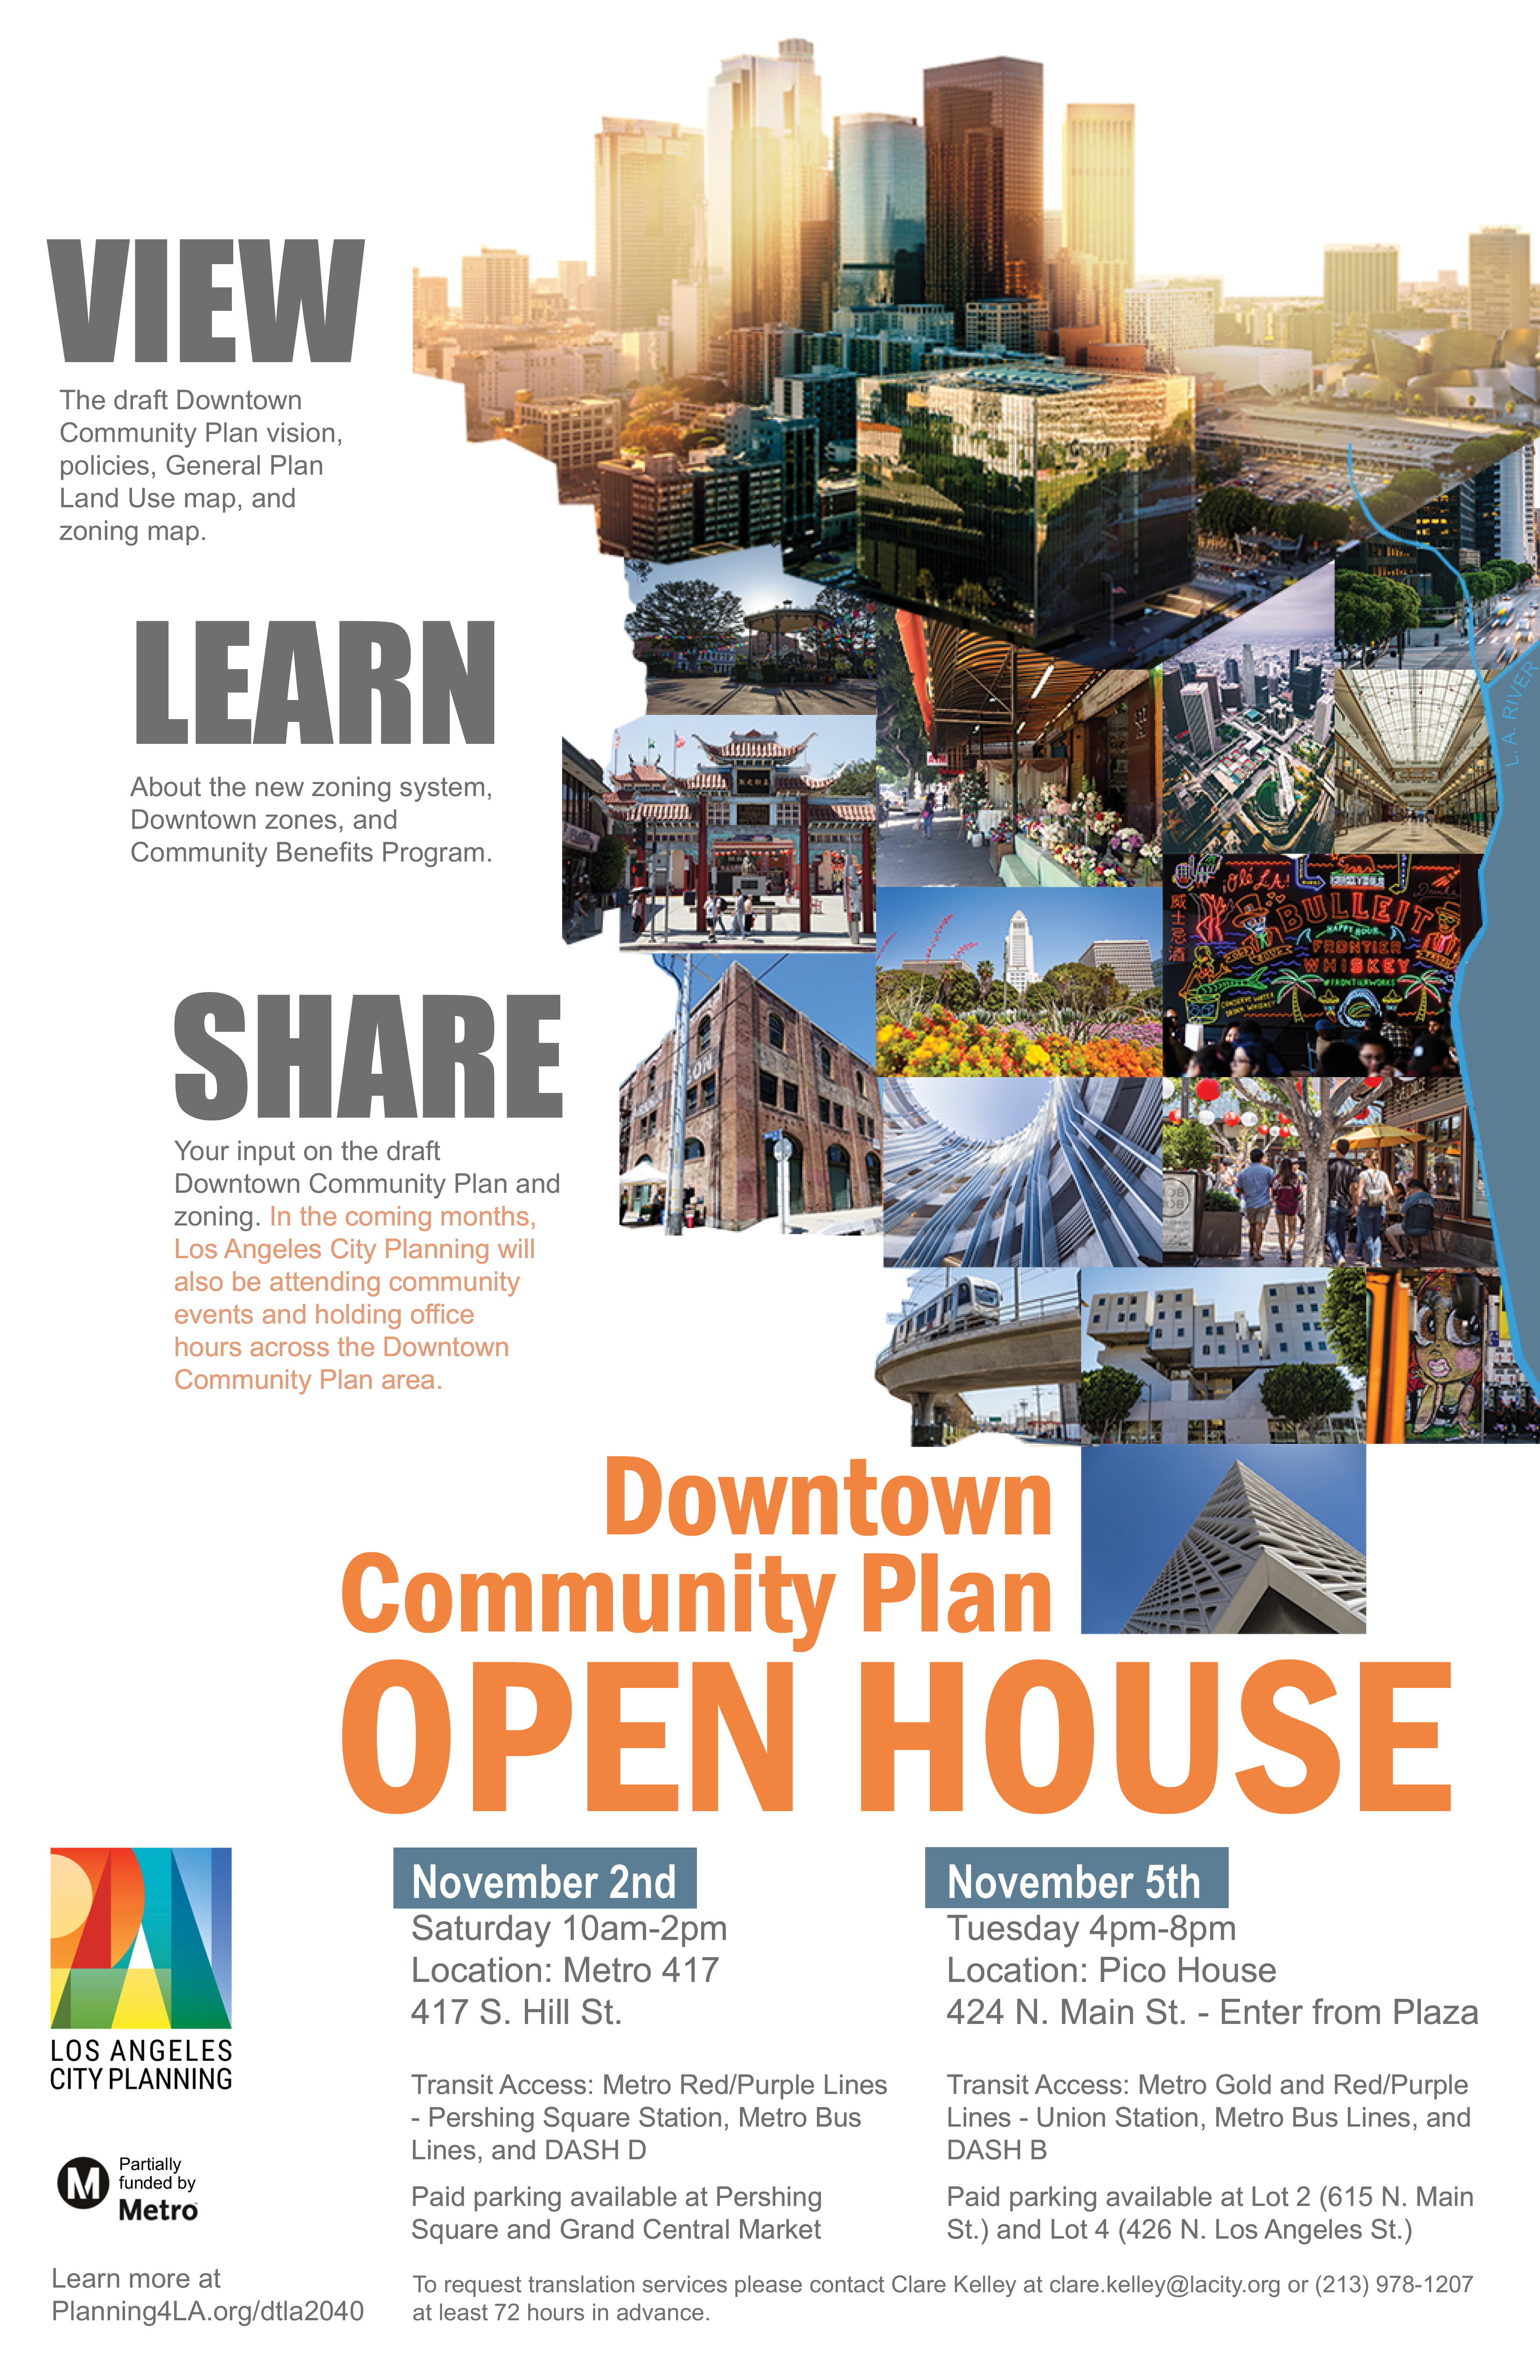 Downtown Community Plan Open House Los Angeles City Planning